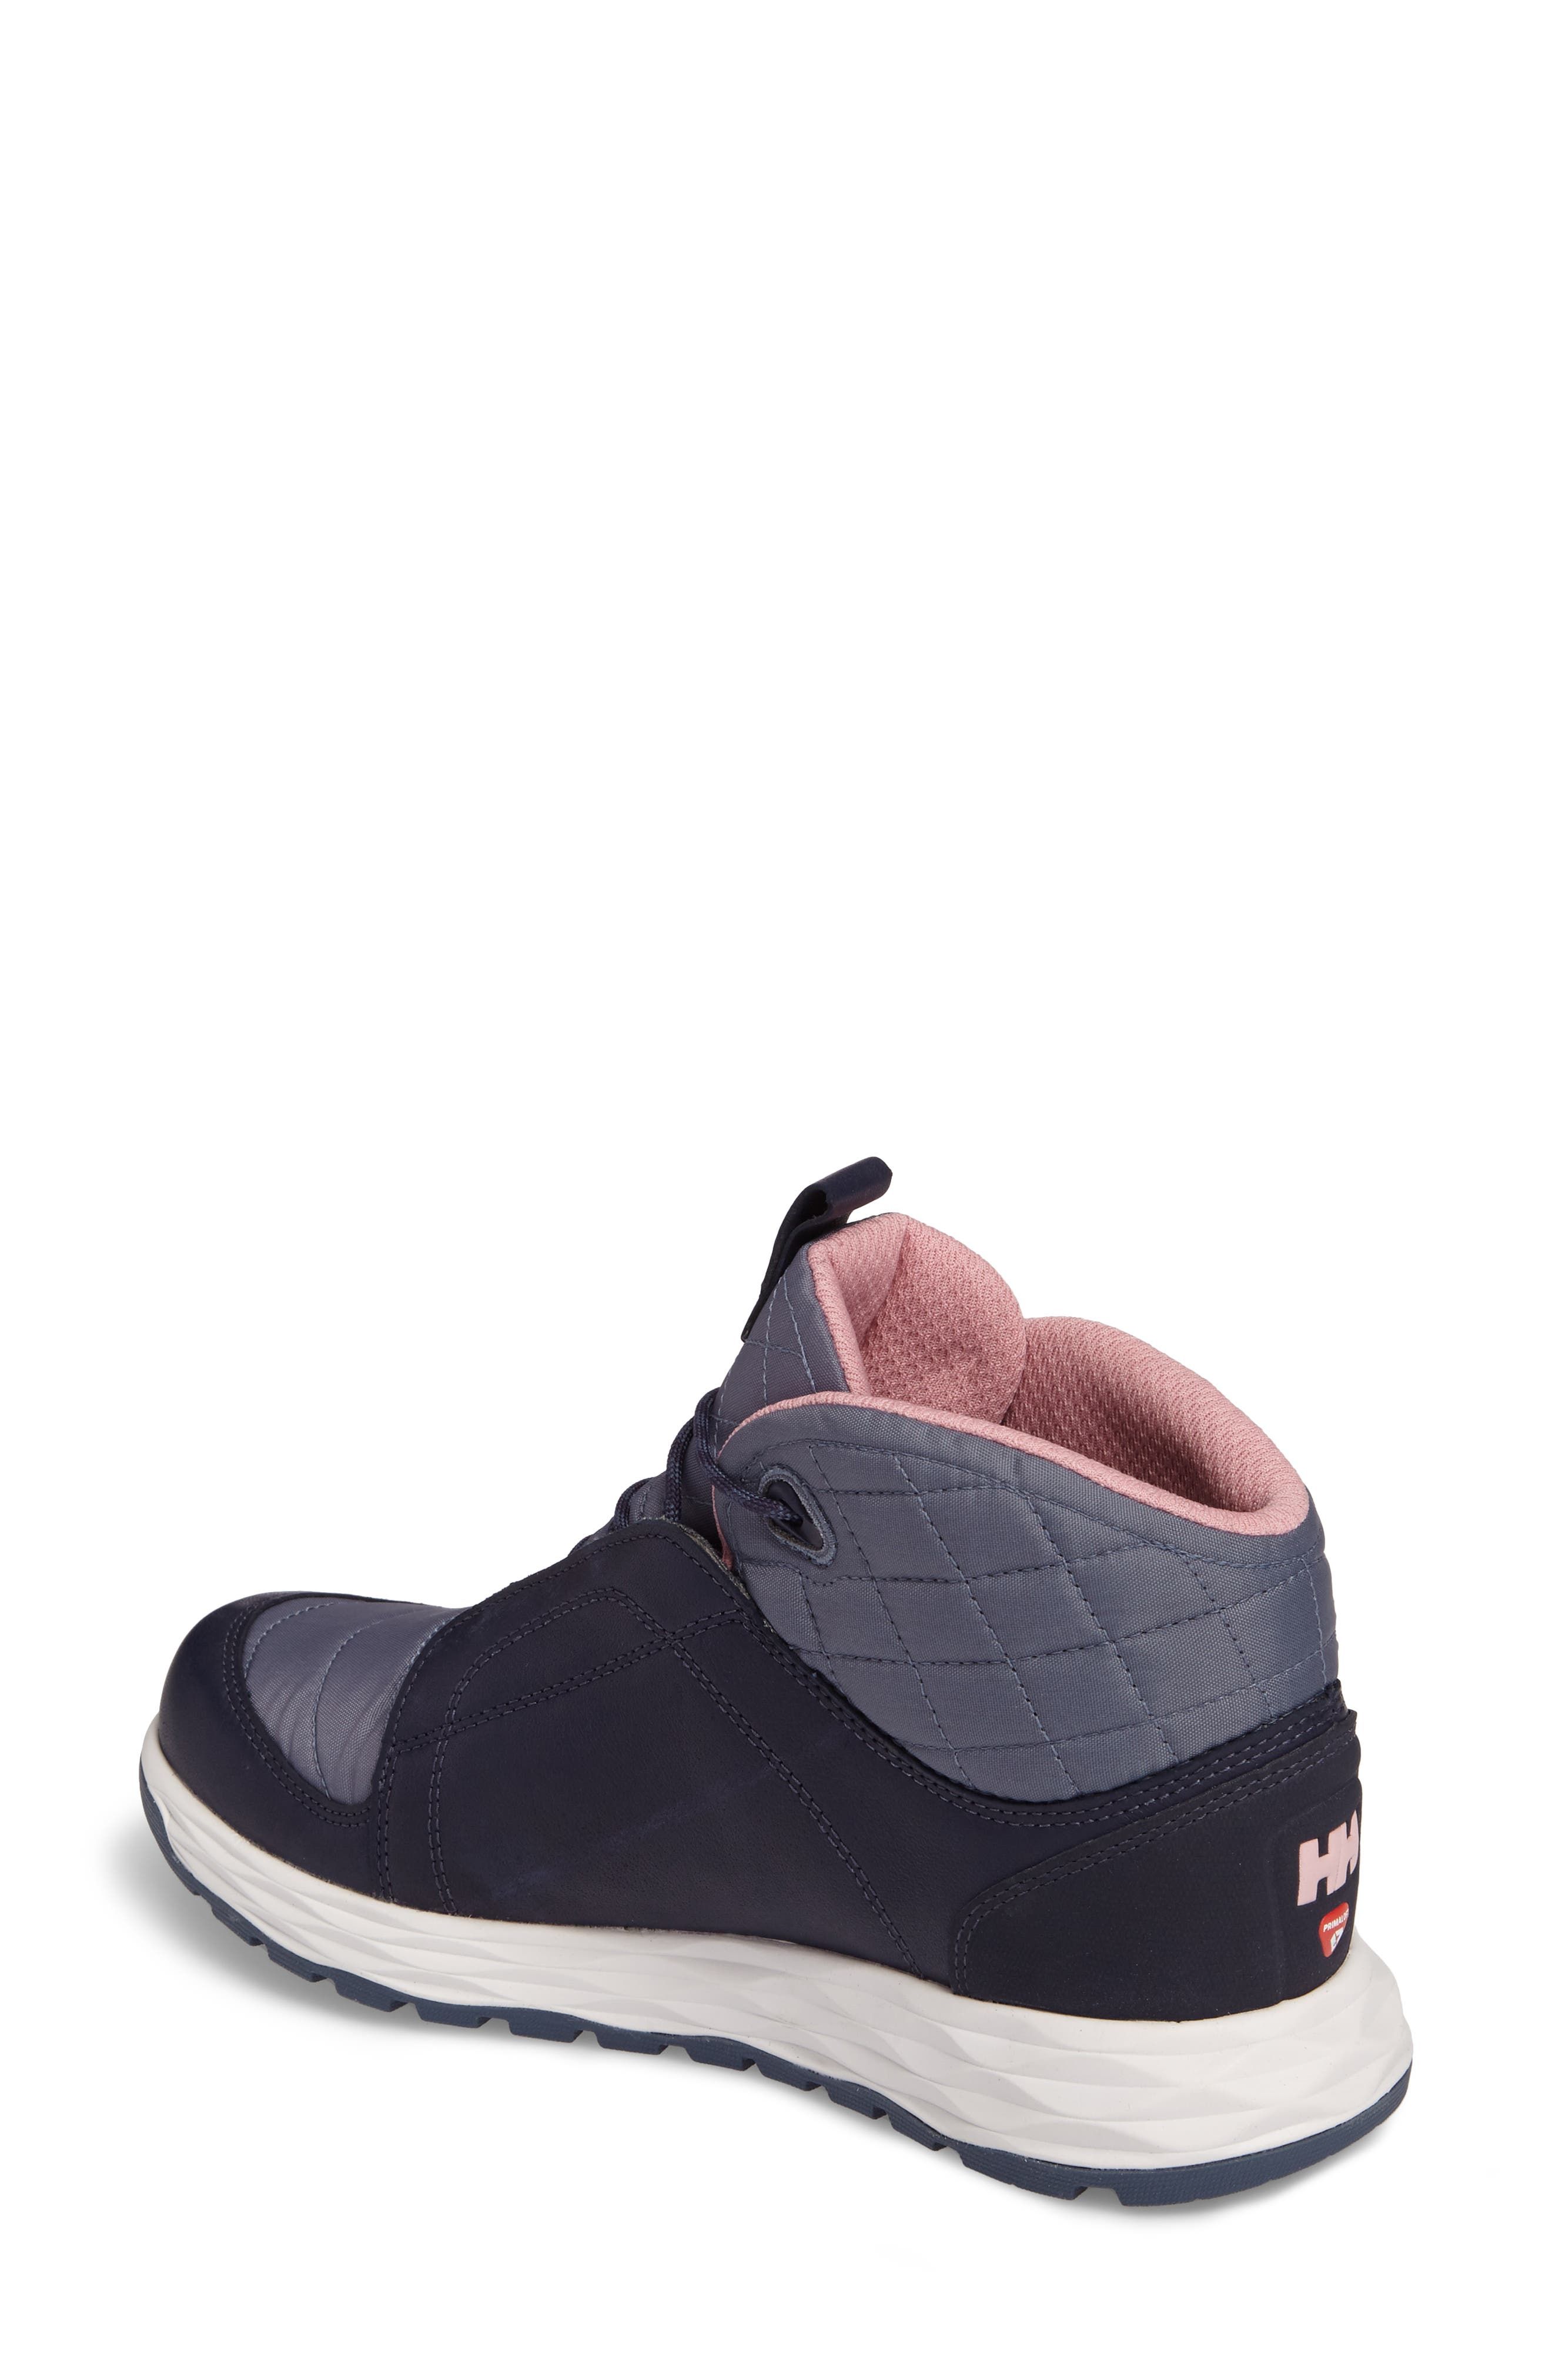 Alternate Image 2  - Helly Hansen Ten Below Waterproof High Top Sneaker (Women)